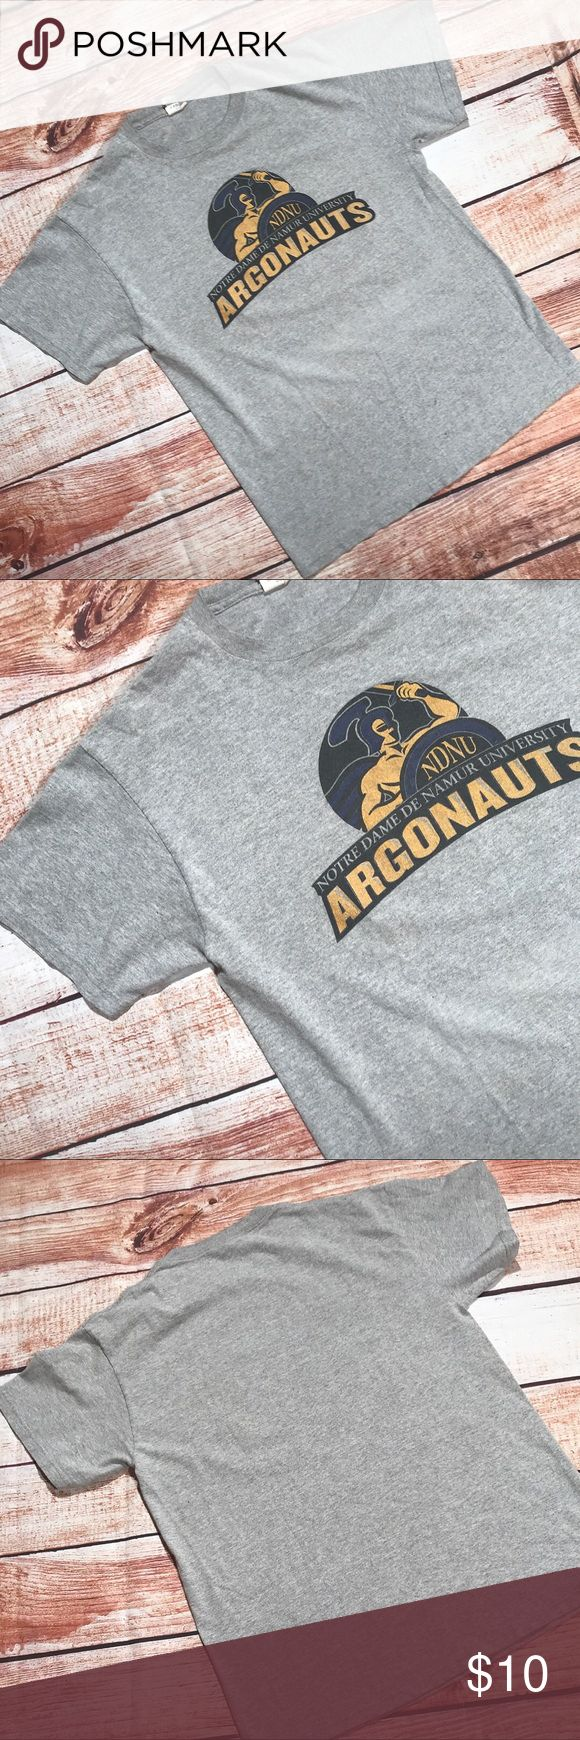 ▪️v i n t a g e : notre dame argonauts t-shirt v i n t a g e : Gray notre dame university  argonauts team mascot t-shirt. Good condition, is faded from wash, no other flaws. Zero clue what sport this would be because I was always under the impression notre dame was the fighting irish.. lol. Either way it's a size medium (no tag) unisex.   ——- #bogo #freeship #sale #clearance #gift #present #Vintage #vtg #retro #college #university #notredame #argonauts #team #sports Vintage Tops Tees - Short…